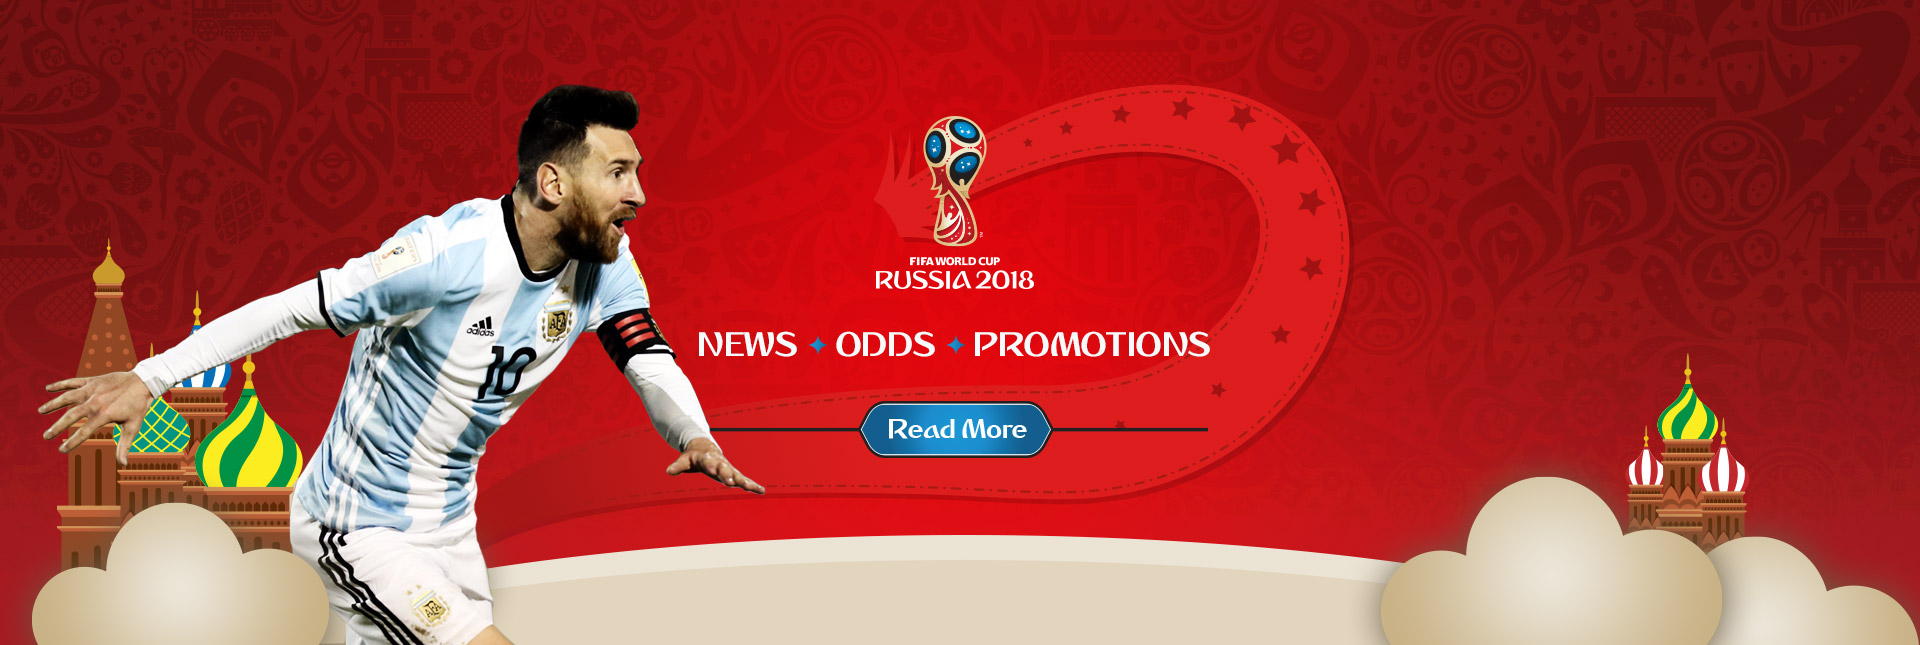 World Cup 2018 News & Odds